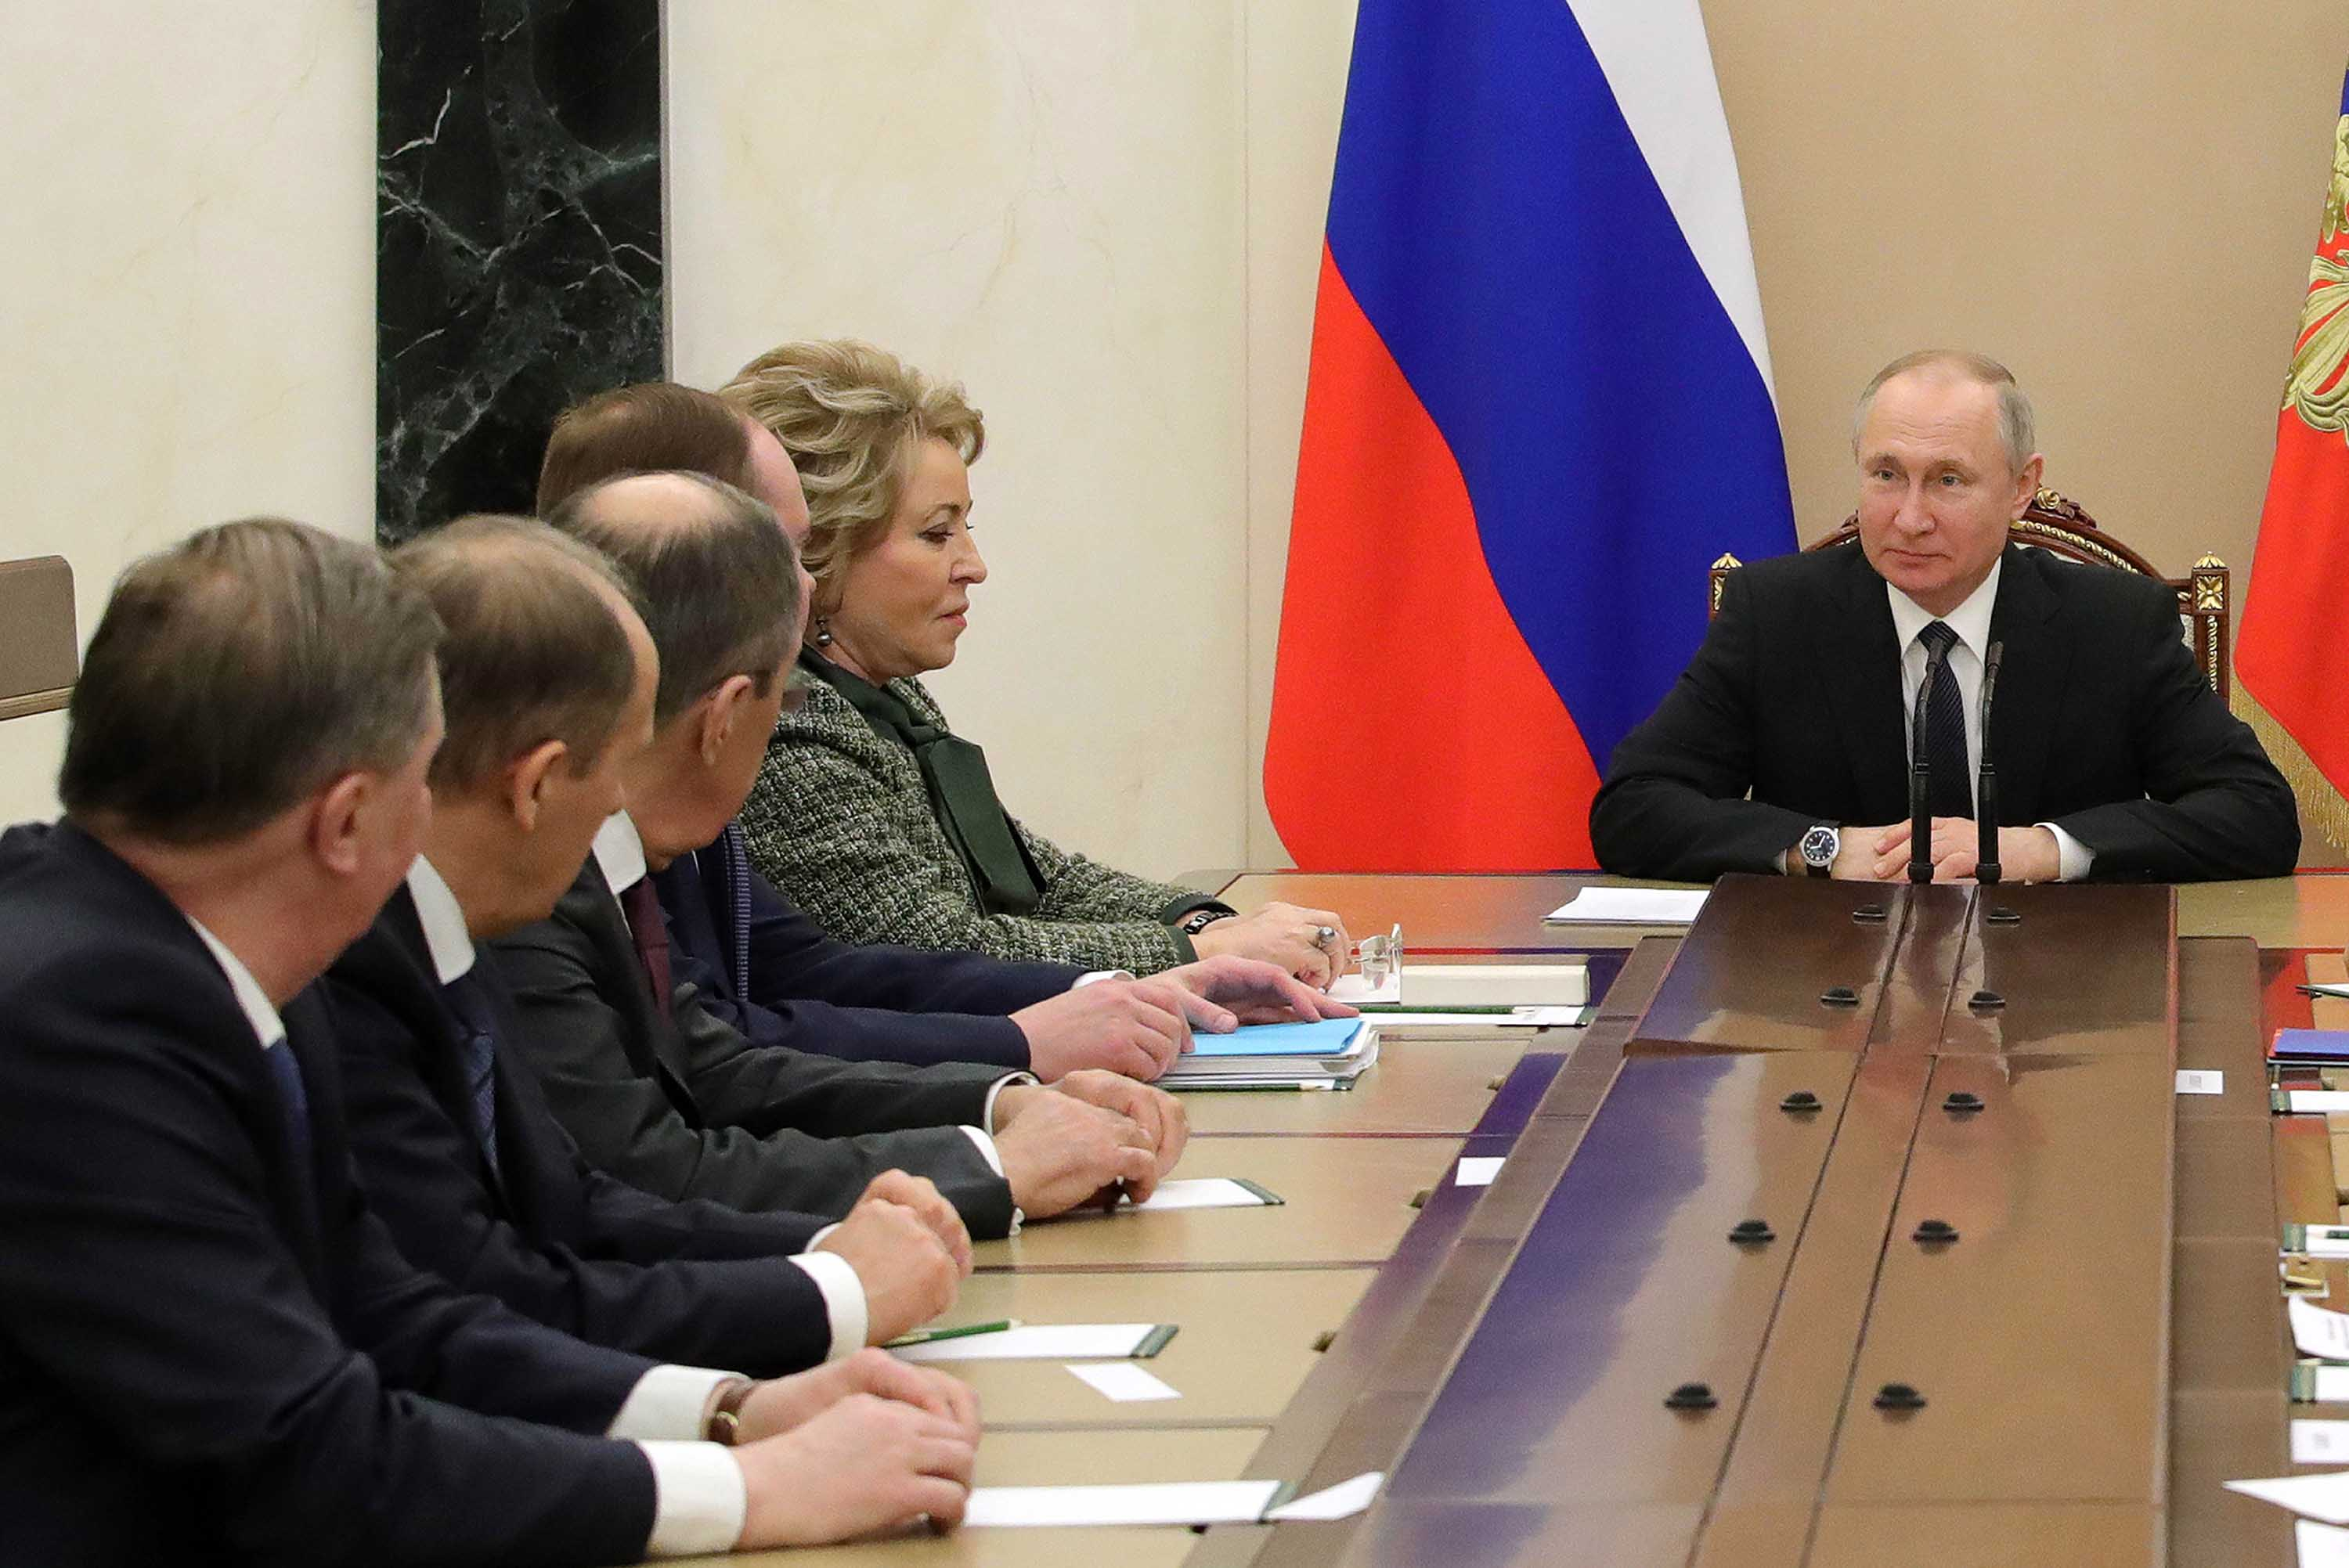 Russian President Vladimir Putin chairs a security council meeting at the Kremlin in Moscow, Russia, on March 20.